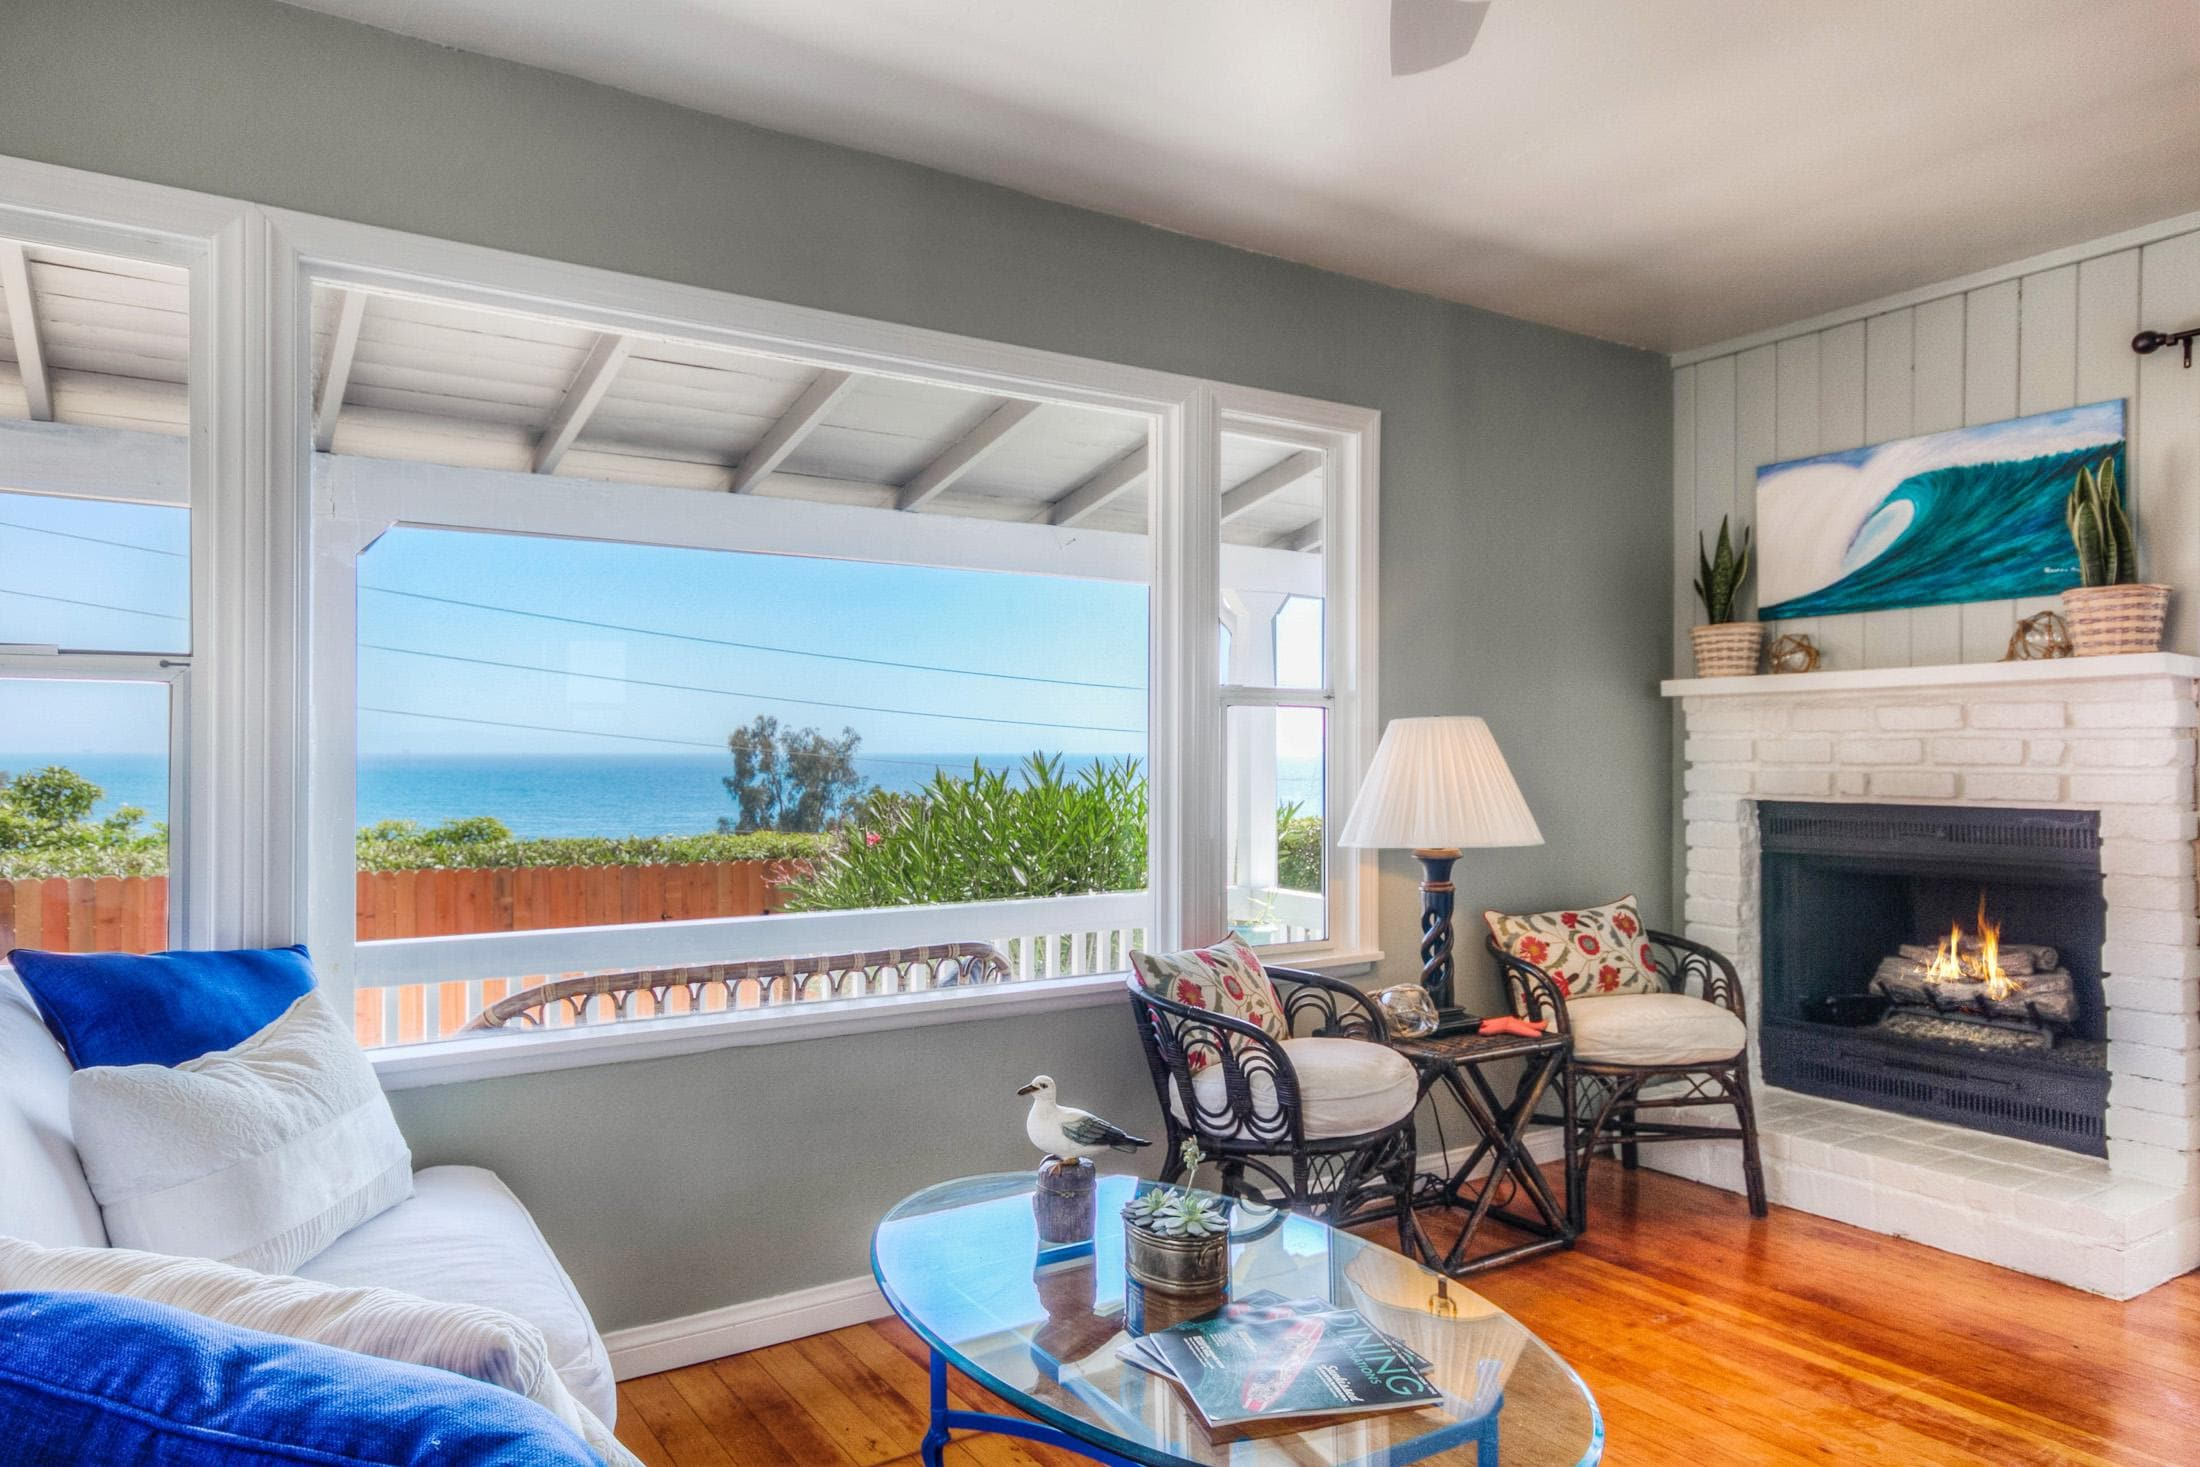 Enjoy the pristine views from the main living area in this exceptional rental on the coast of Summerland, CA.